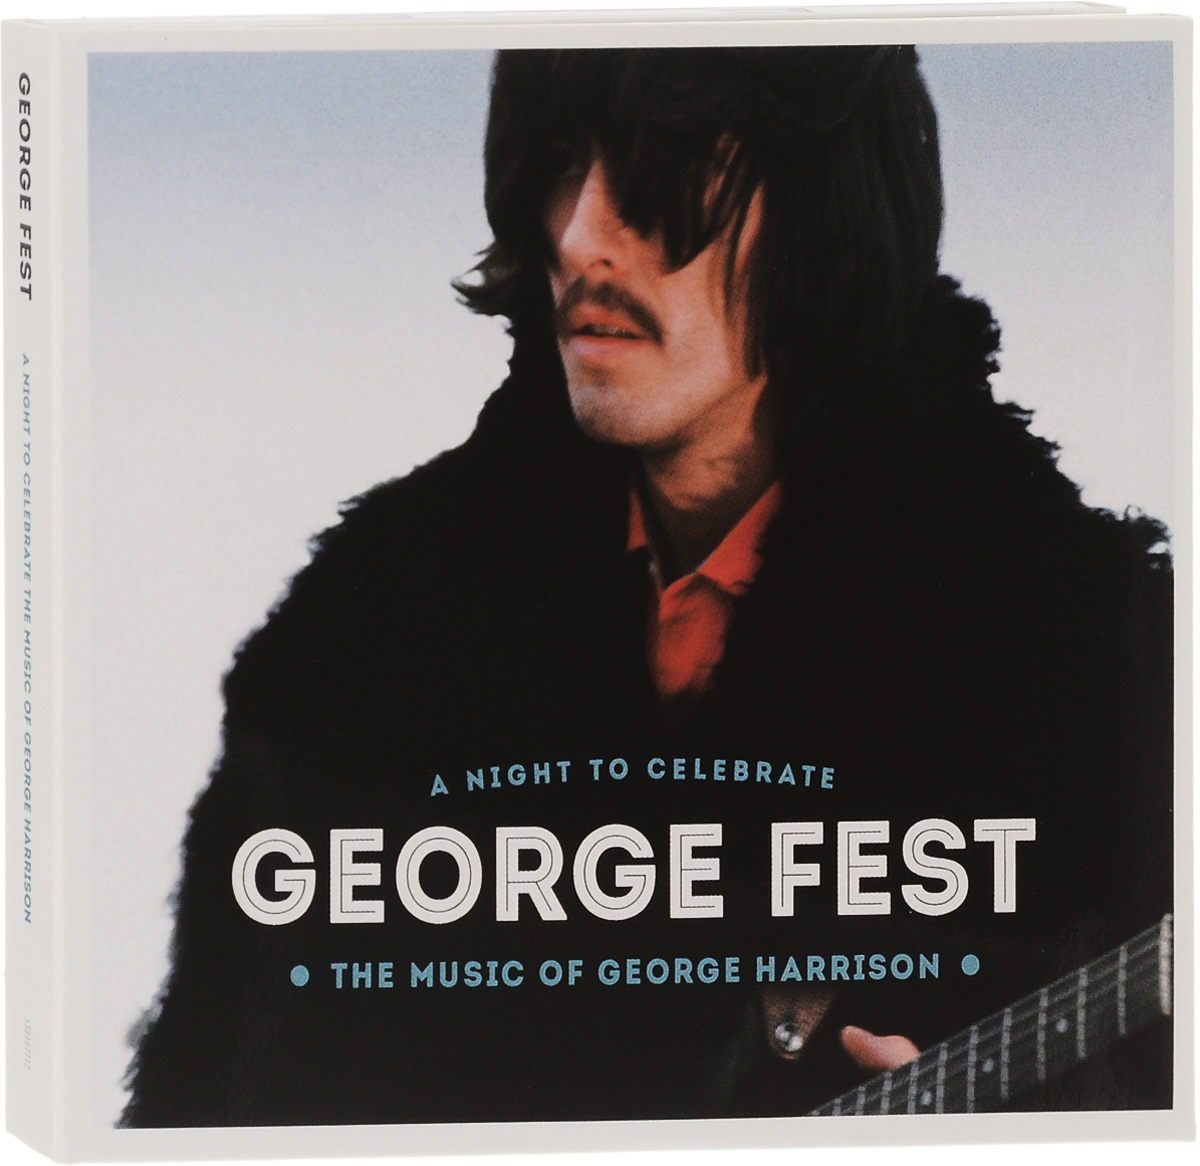 Conan O'Brien George Fest. A Night To Celebrate The Music Of George Harrison (2 CD + DVD) various artist facedown fest 2004 2 dvd